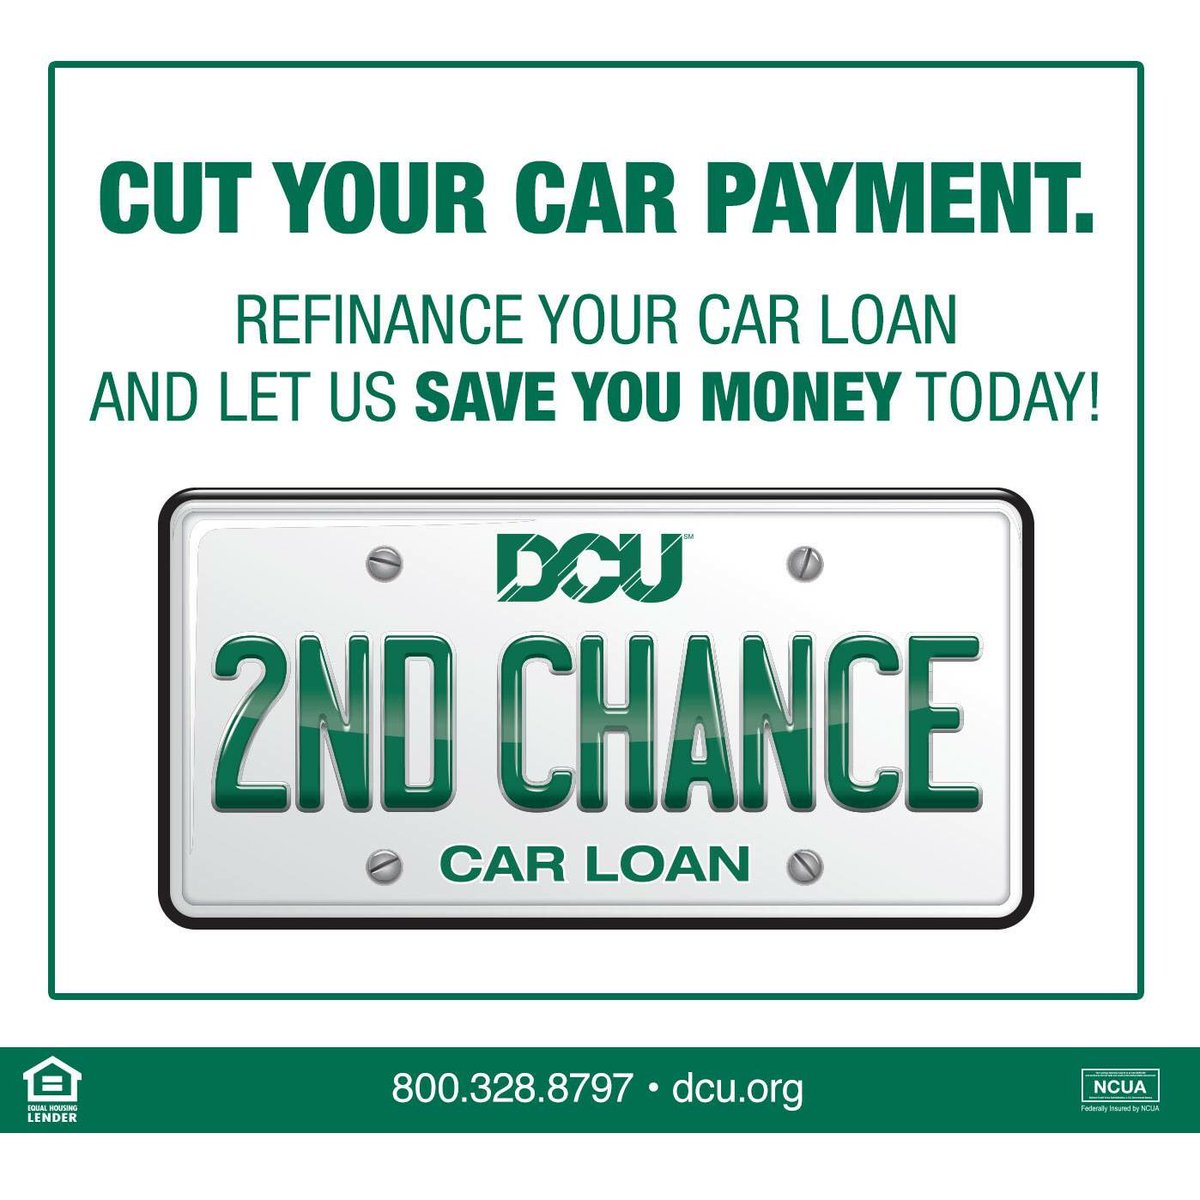 Dcu Car Loan >> Dcu On Twitter Cut Your Car Payment Refinance Today With A